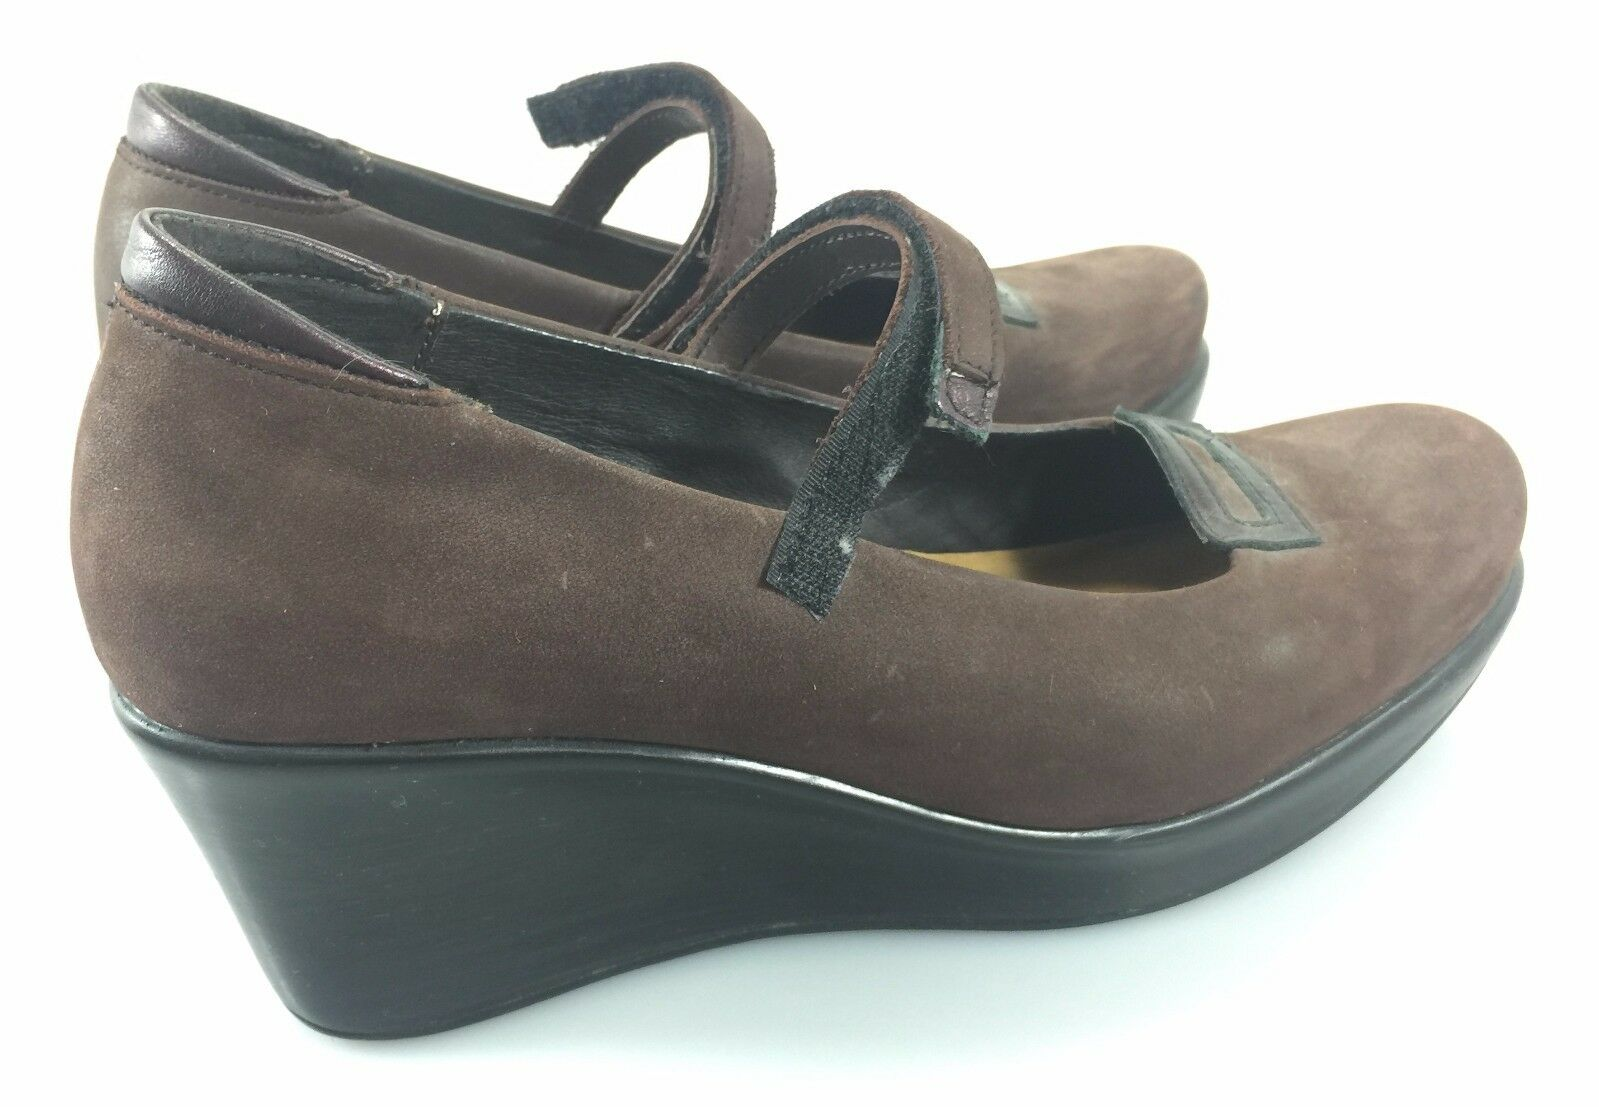 Naot damen 9US 40EU braun Suede Mary Janes 2.75  Wedge schuhe Made in Israel